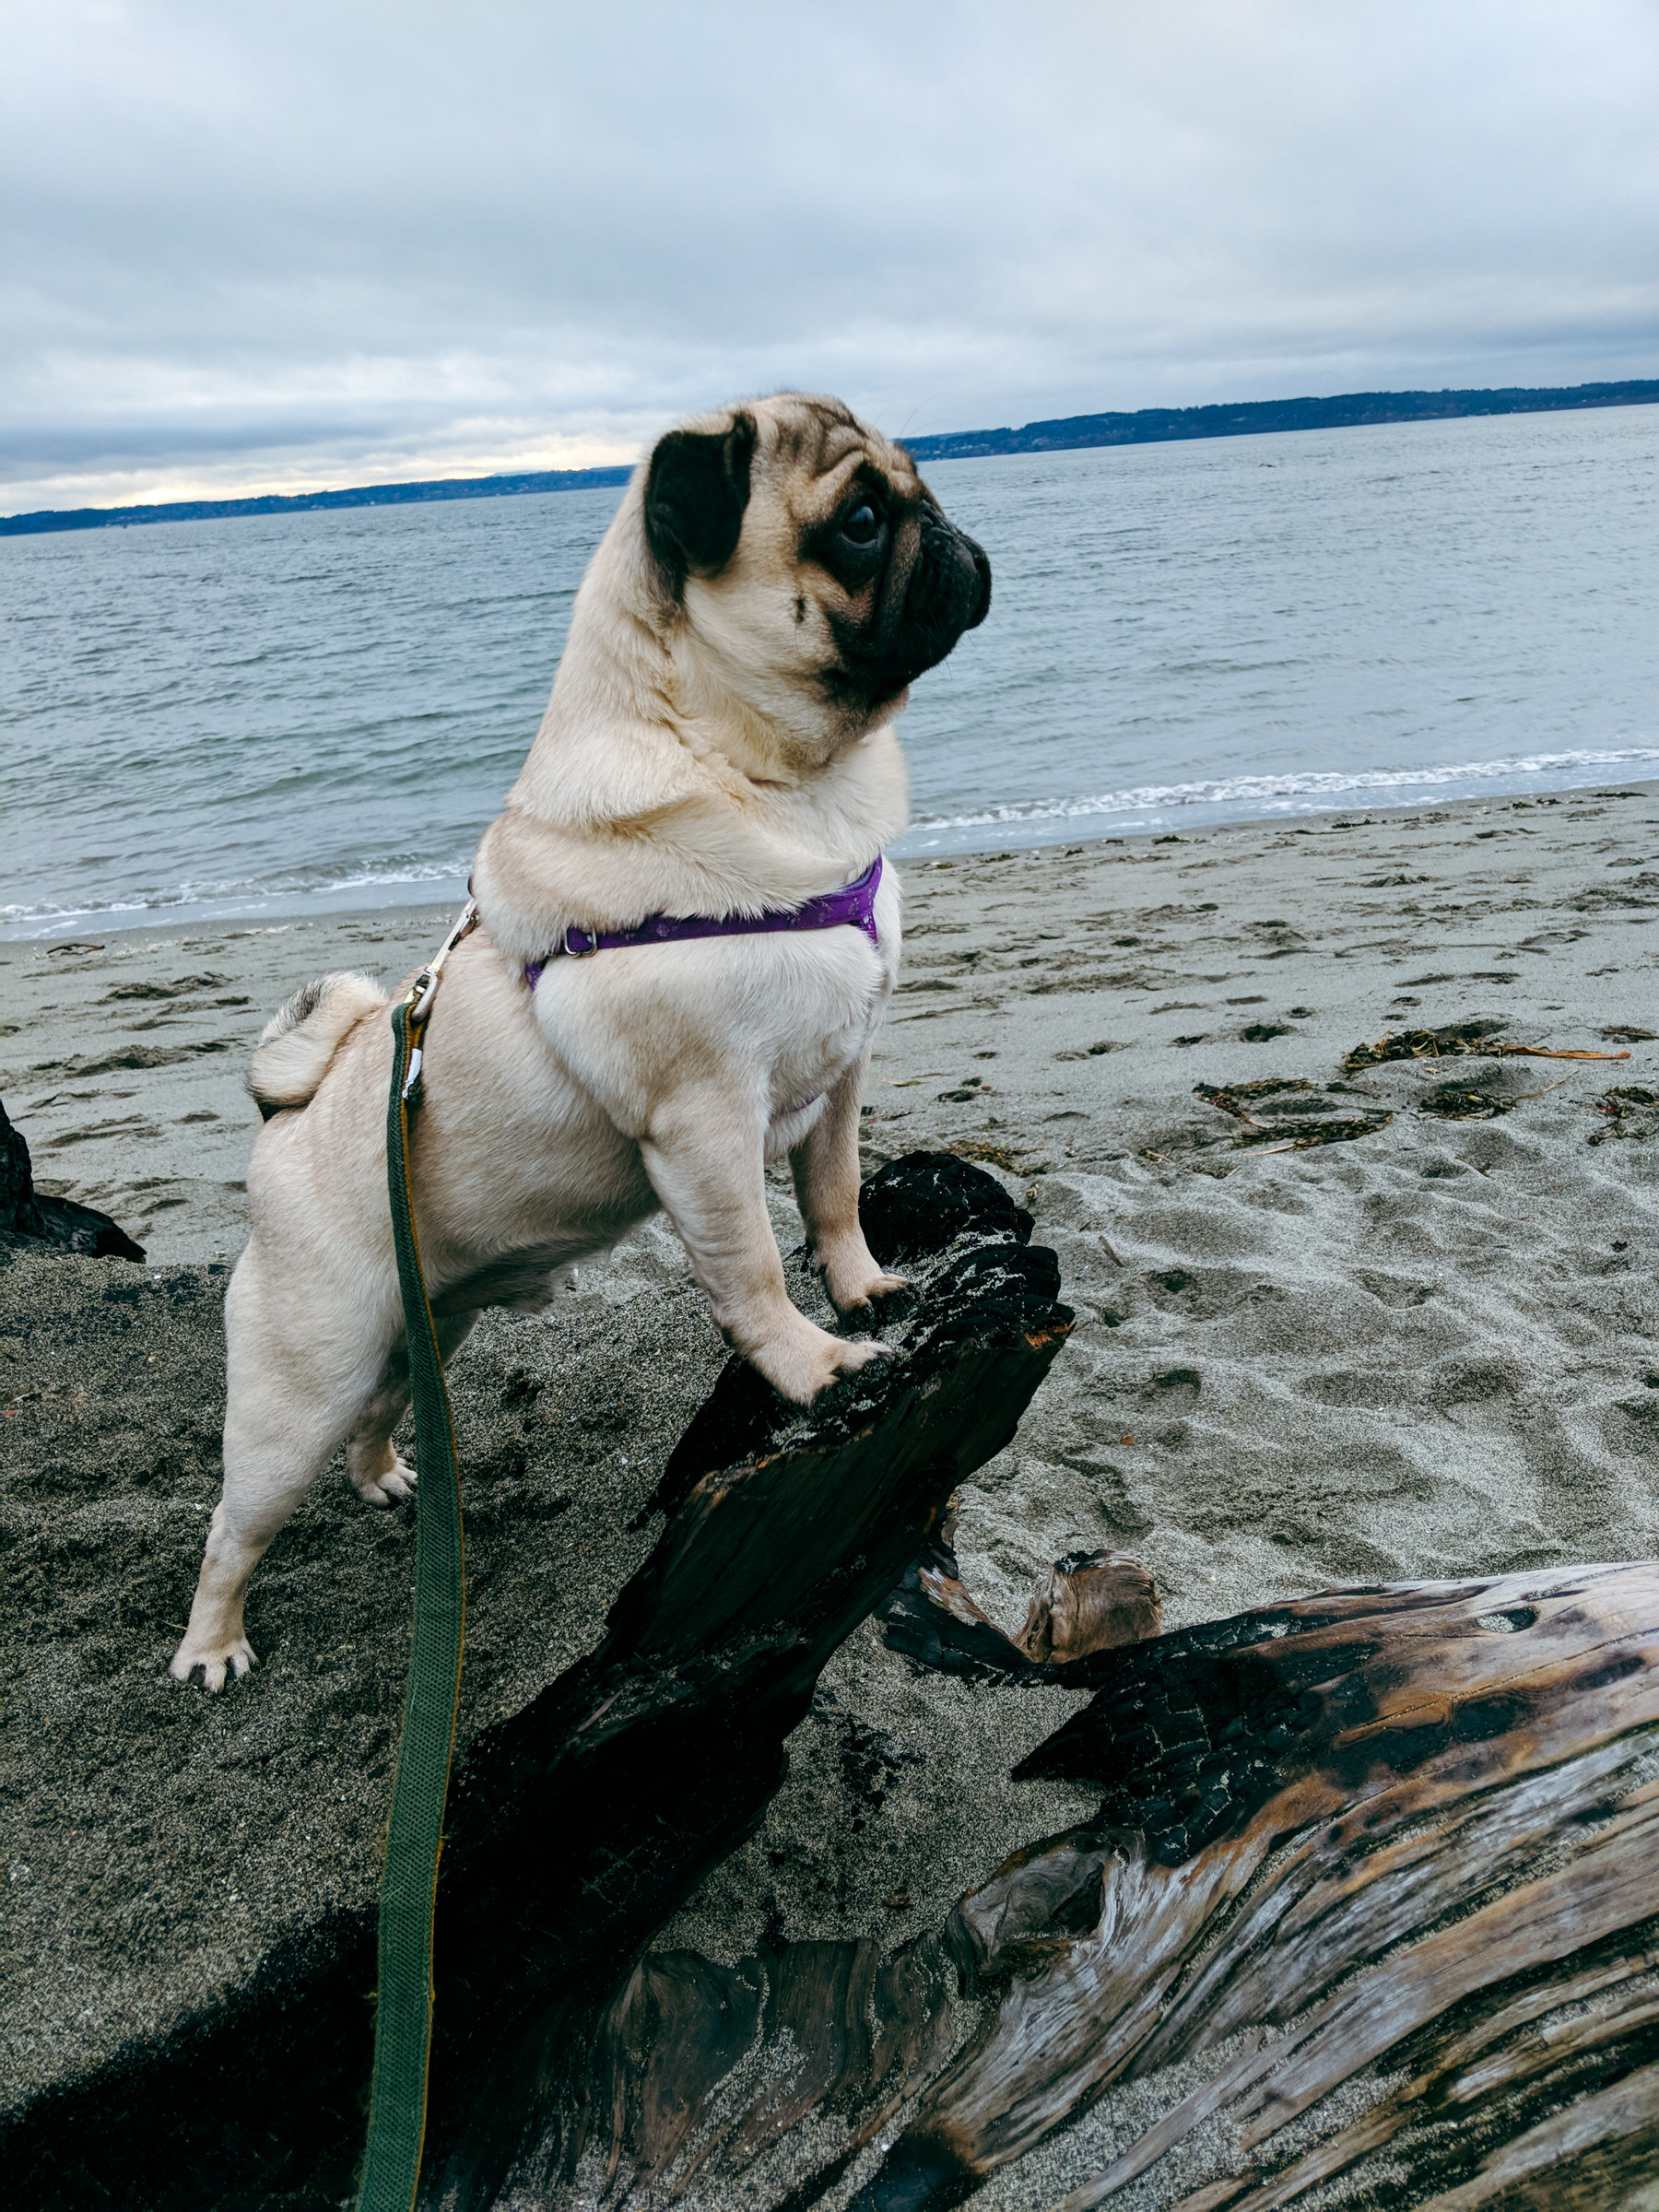 A dog poses on a rock in front of a beach.